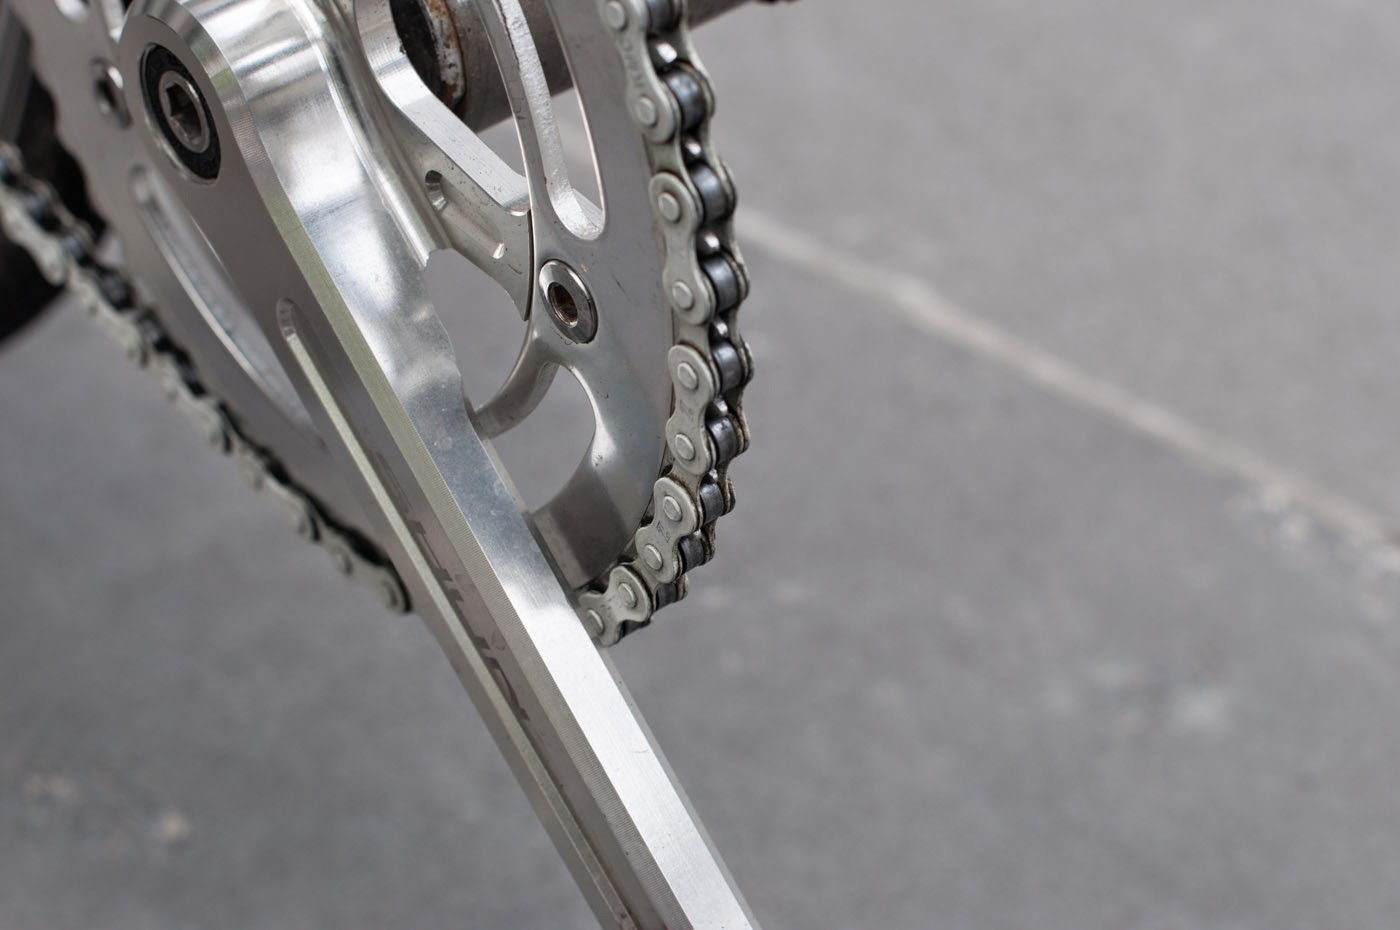 single speed, conversion, road bike, bicycle, Swanston street, Melbourne, Australia, the biketorialist, tim macauley, Macauley, detail, leather, frame, biketorialist, bespoke, custom, customisation, style, bike, bicycle, crank, chain